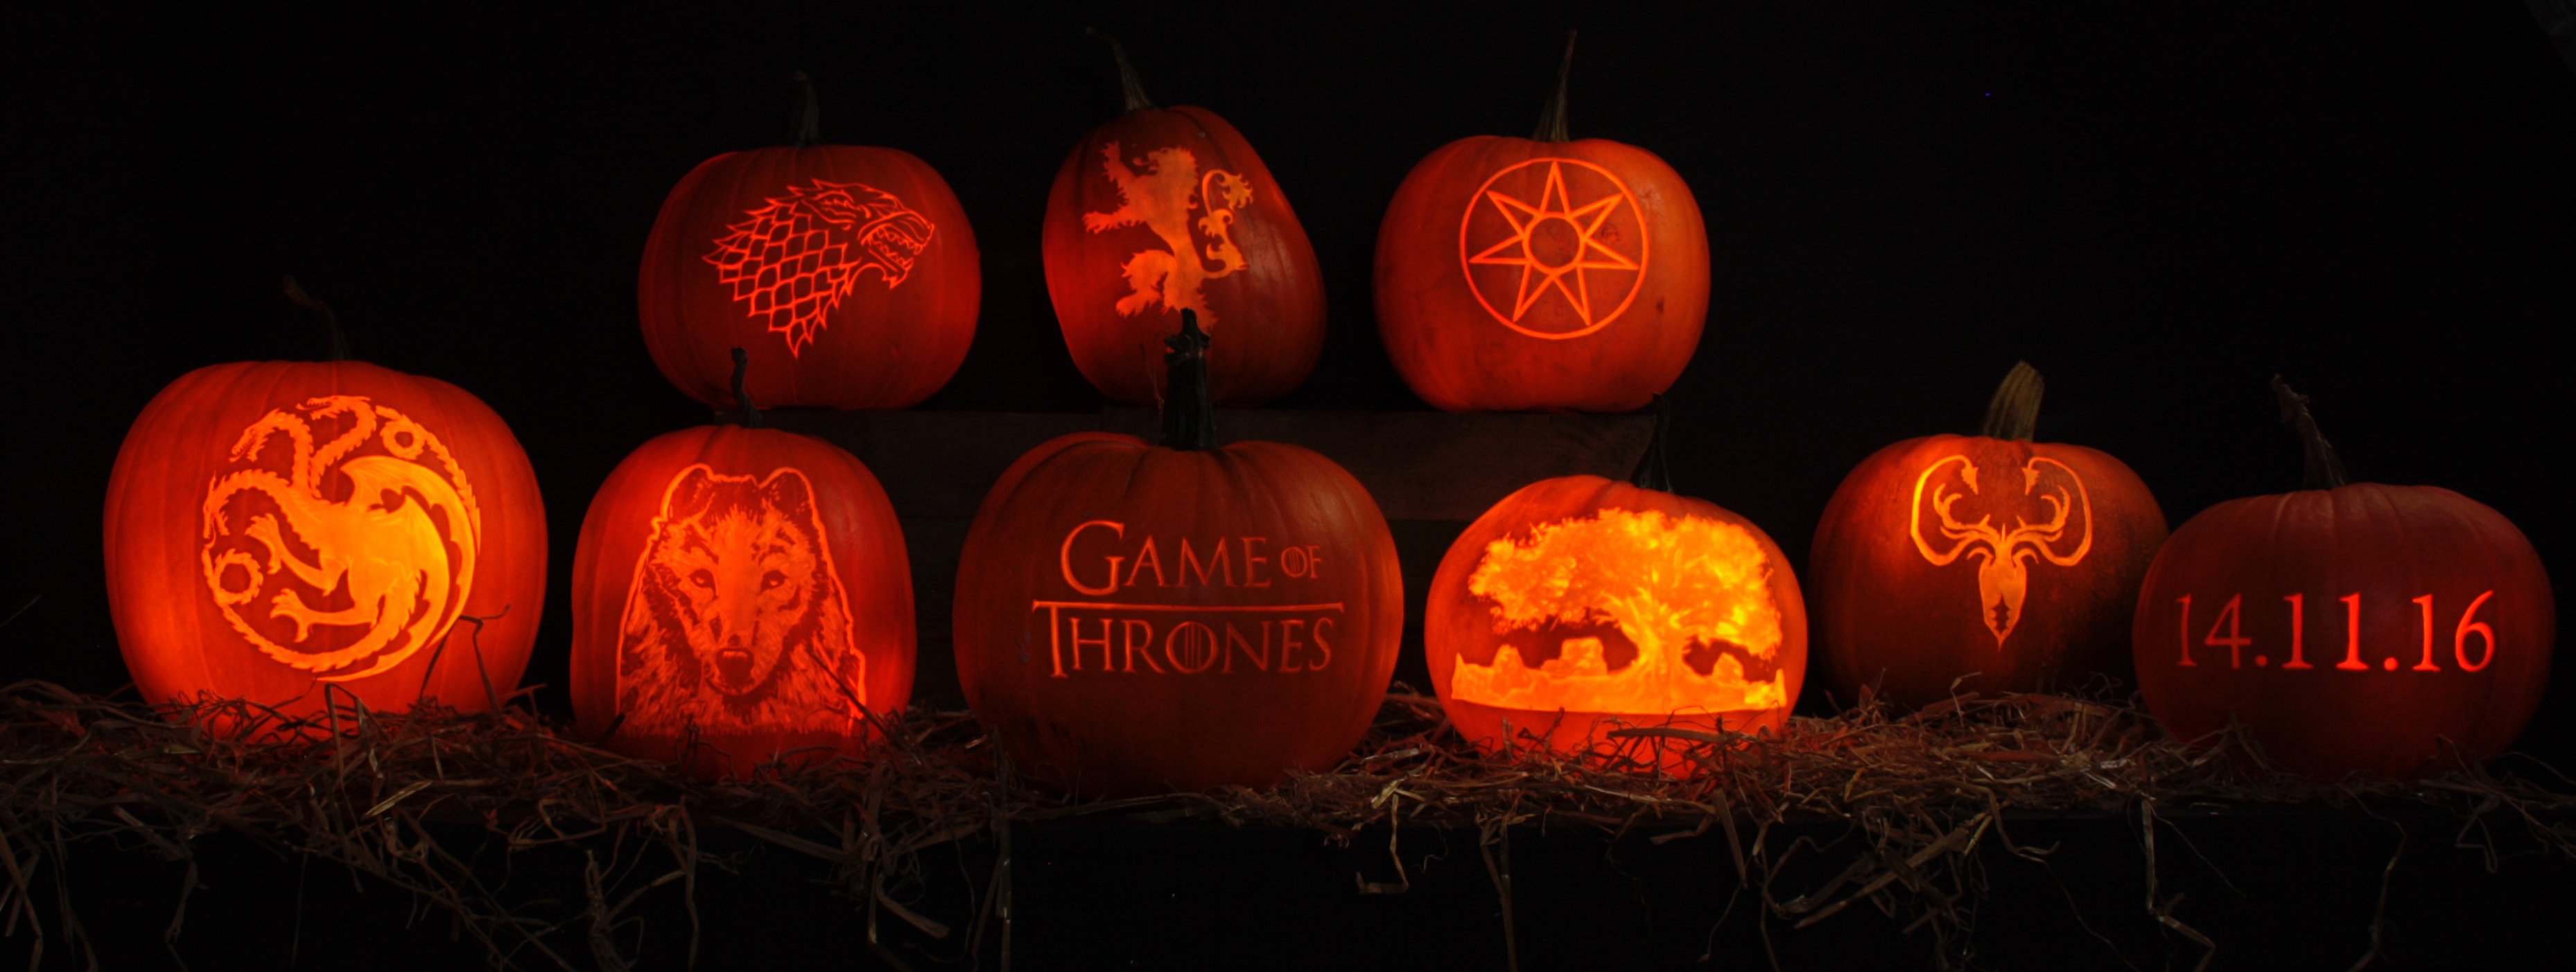 Game of thrones pumpkin carving by sand in your eye